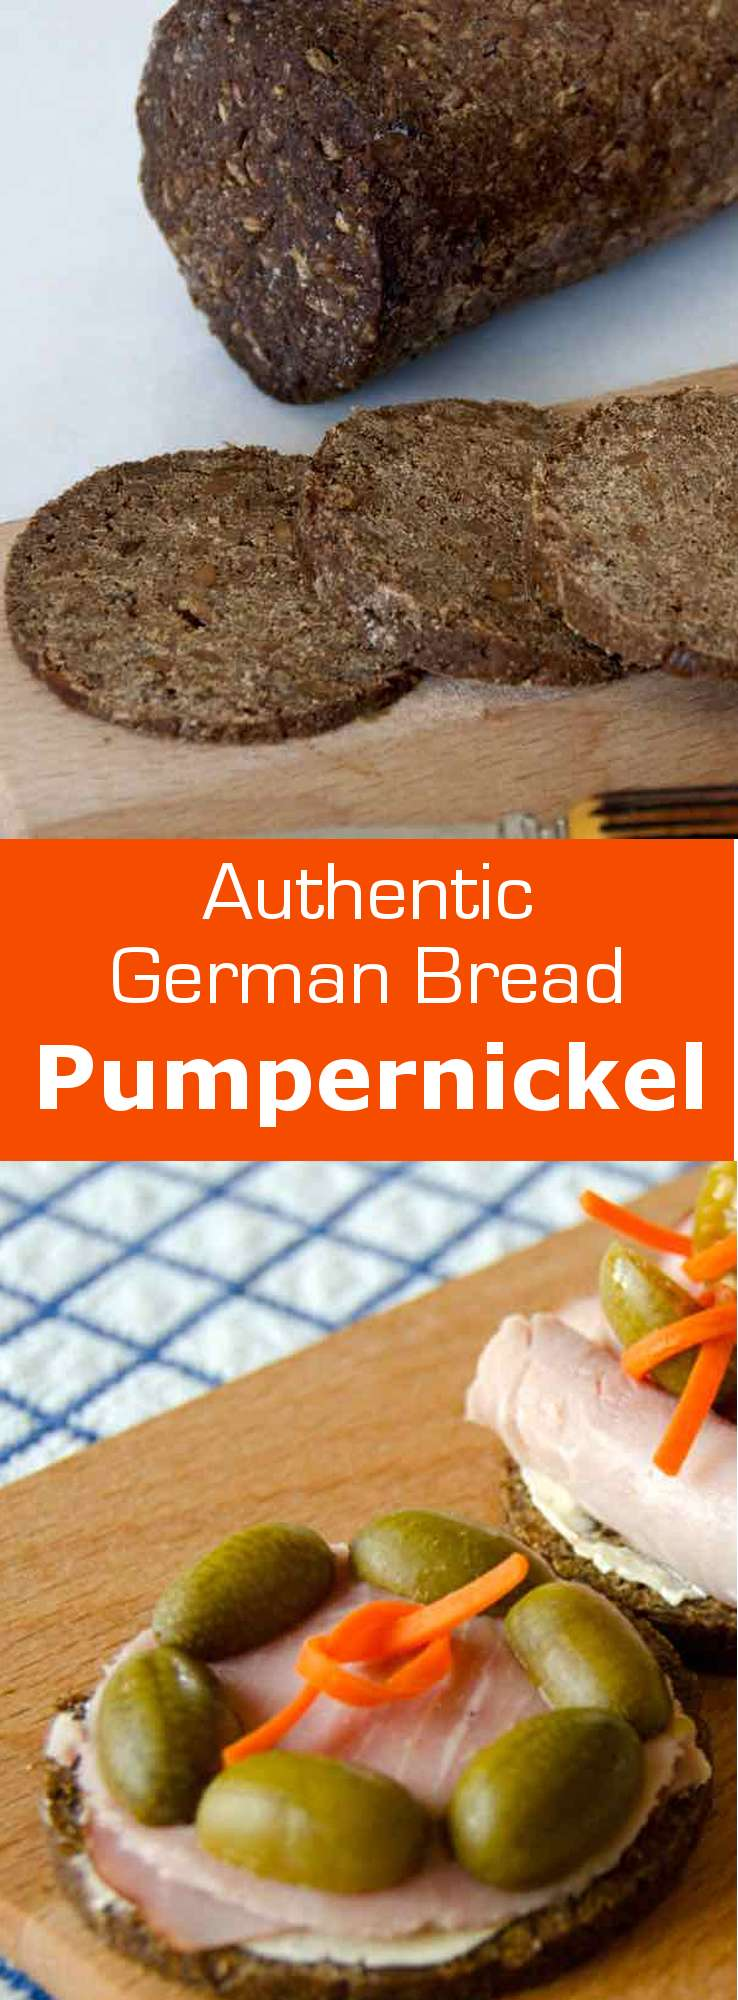 Authentic pumpernickel is a pure rye bread, originally from Westphalia in Germany, made of at least 90% coarsely ground rye flour or wholemeal rye grain. #bread #germany #196flavors